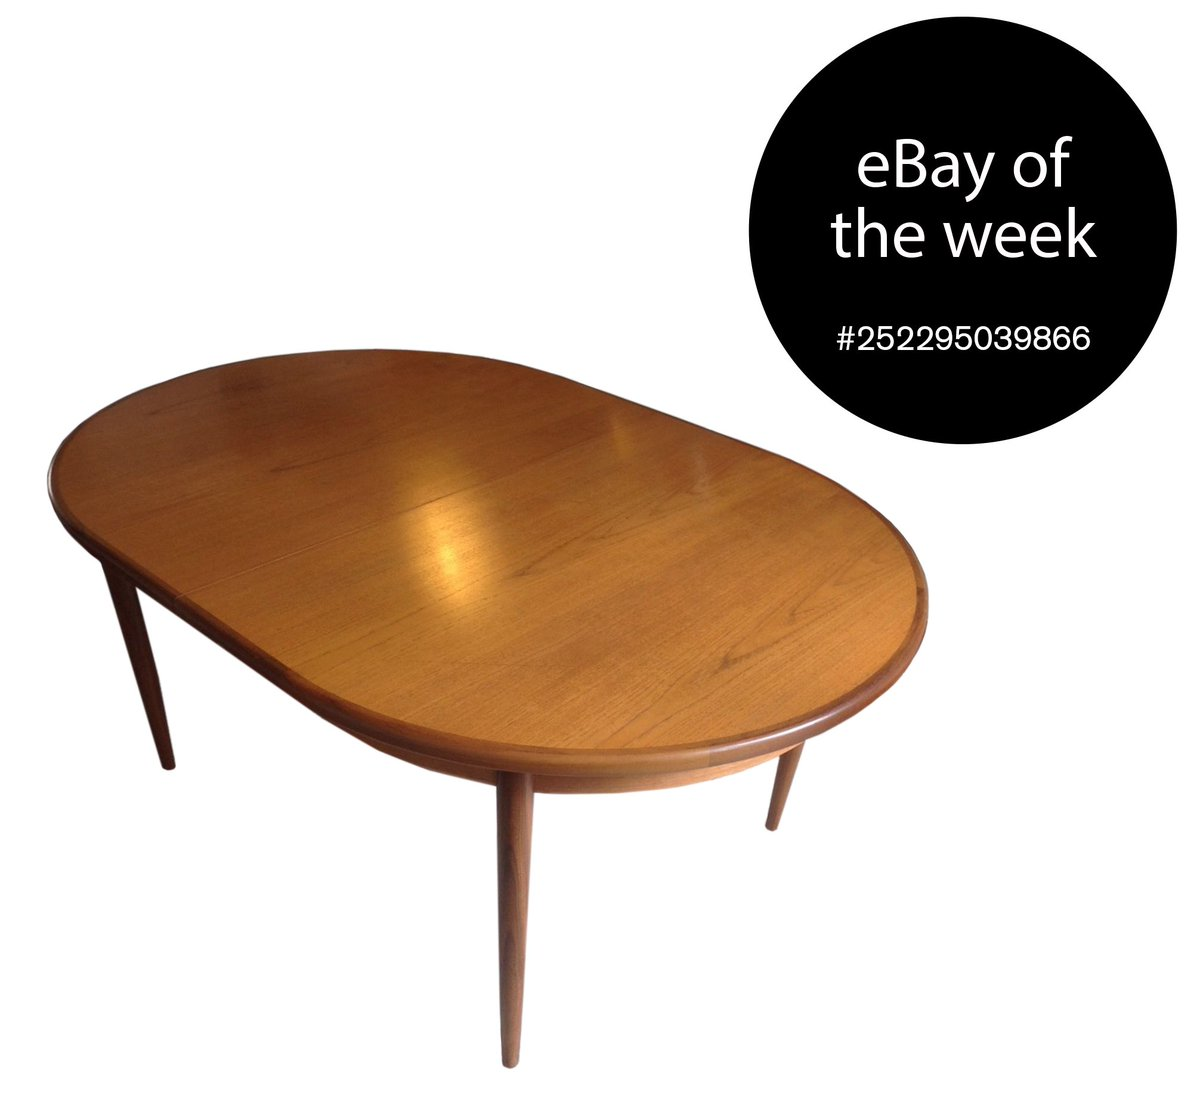 Picture of: G Plan Design On Twitter Check Out This Vintage G Plan Extending Dining Table On Ebay Until Sunday Furniture Https T Co Irr6vdbe2n Https T Co Ke2fafpwvf